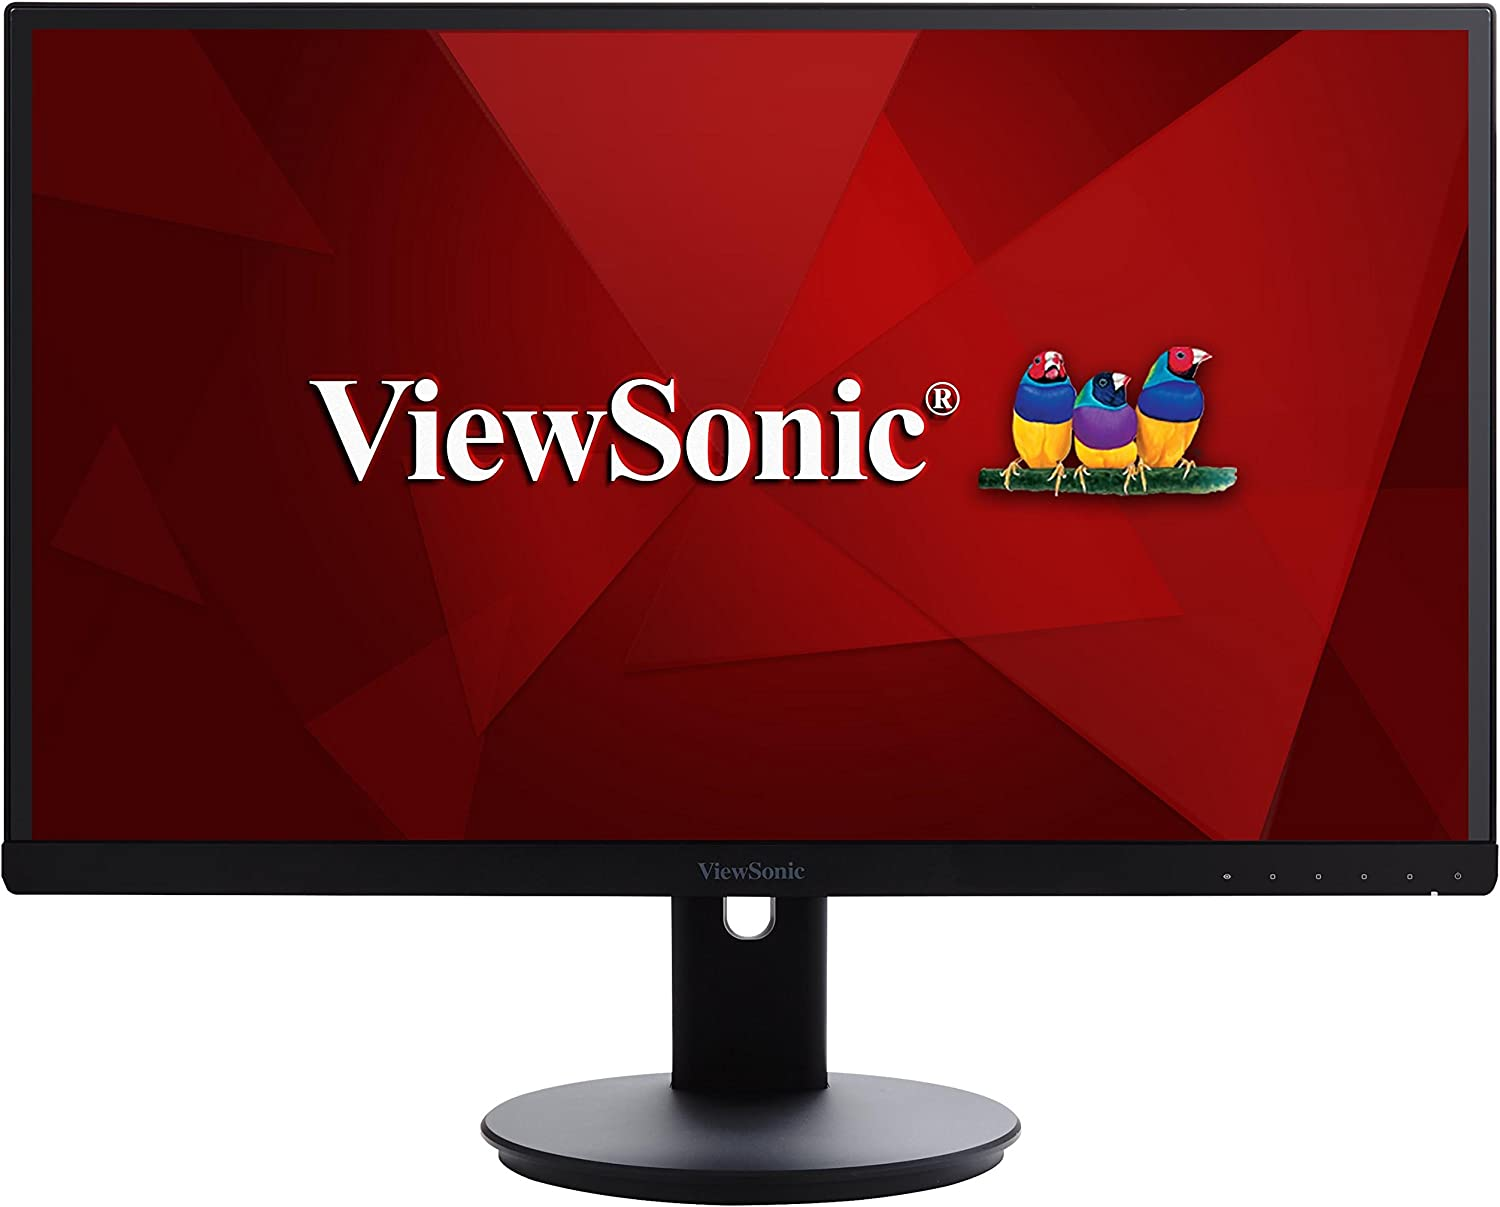 ViewSonic VG2753 27 Inch IPS 1080p Ergonomic Frameless Monitor with HDMI and DisplayPort for Home and Office